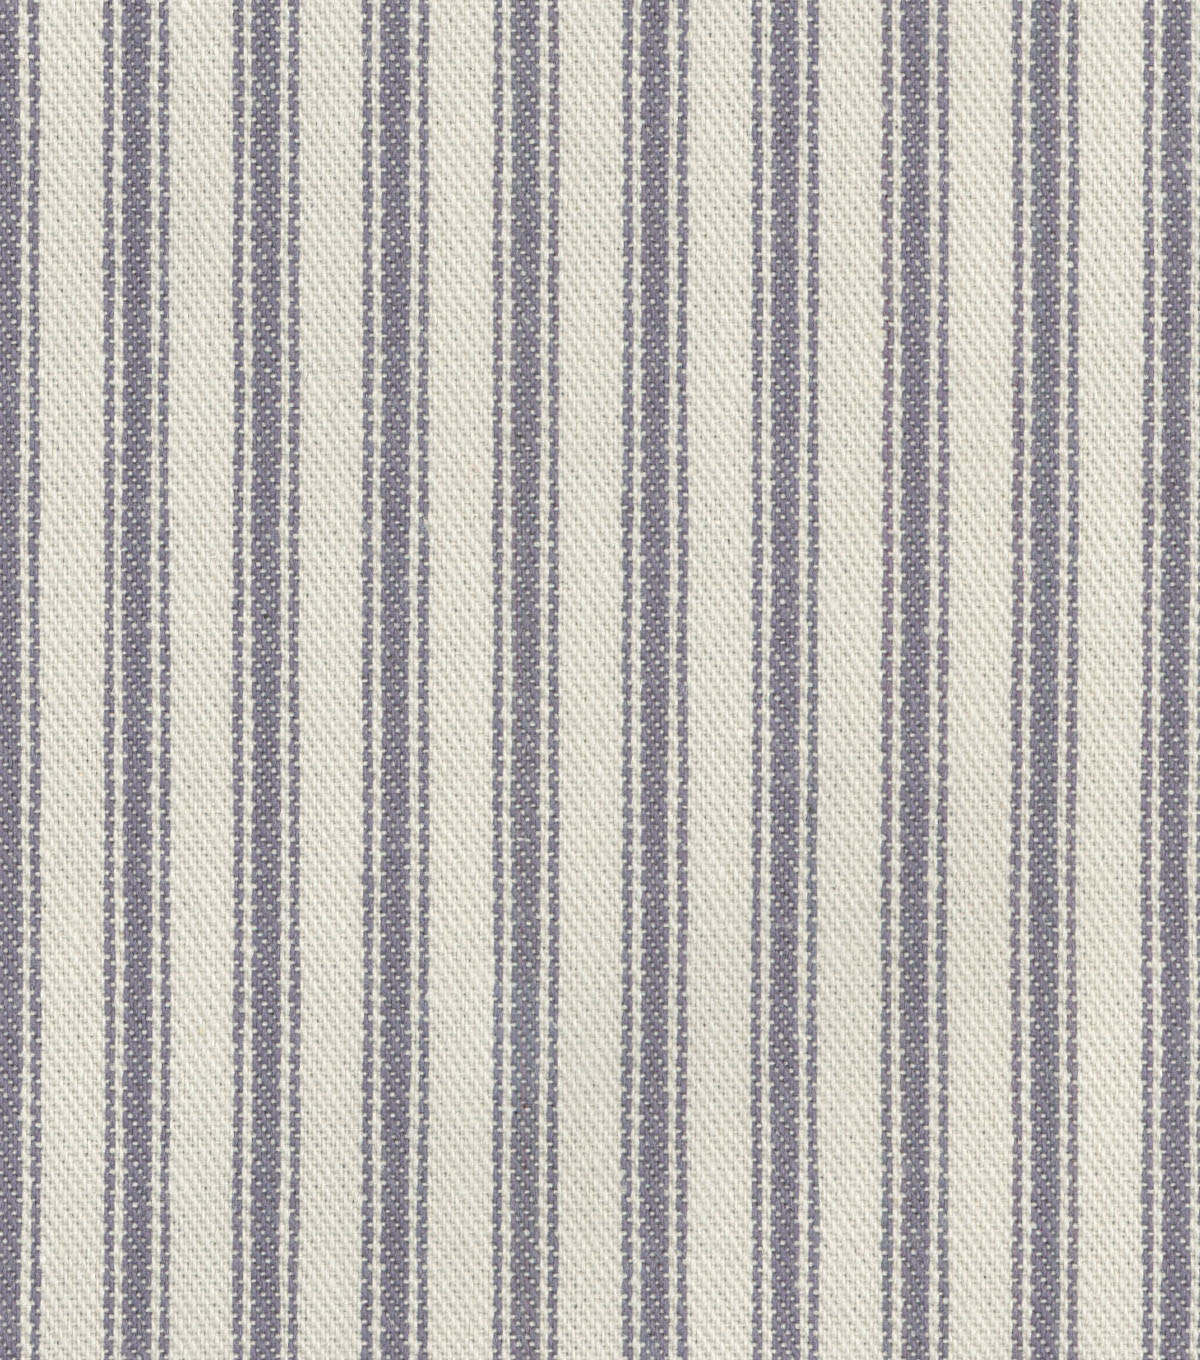 Waverly Upholstery Fabric 13x13\u0022 Swatch-Classic Ticking Graphite